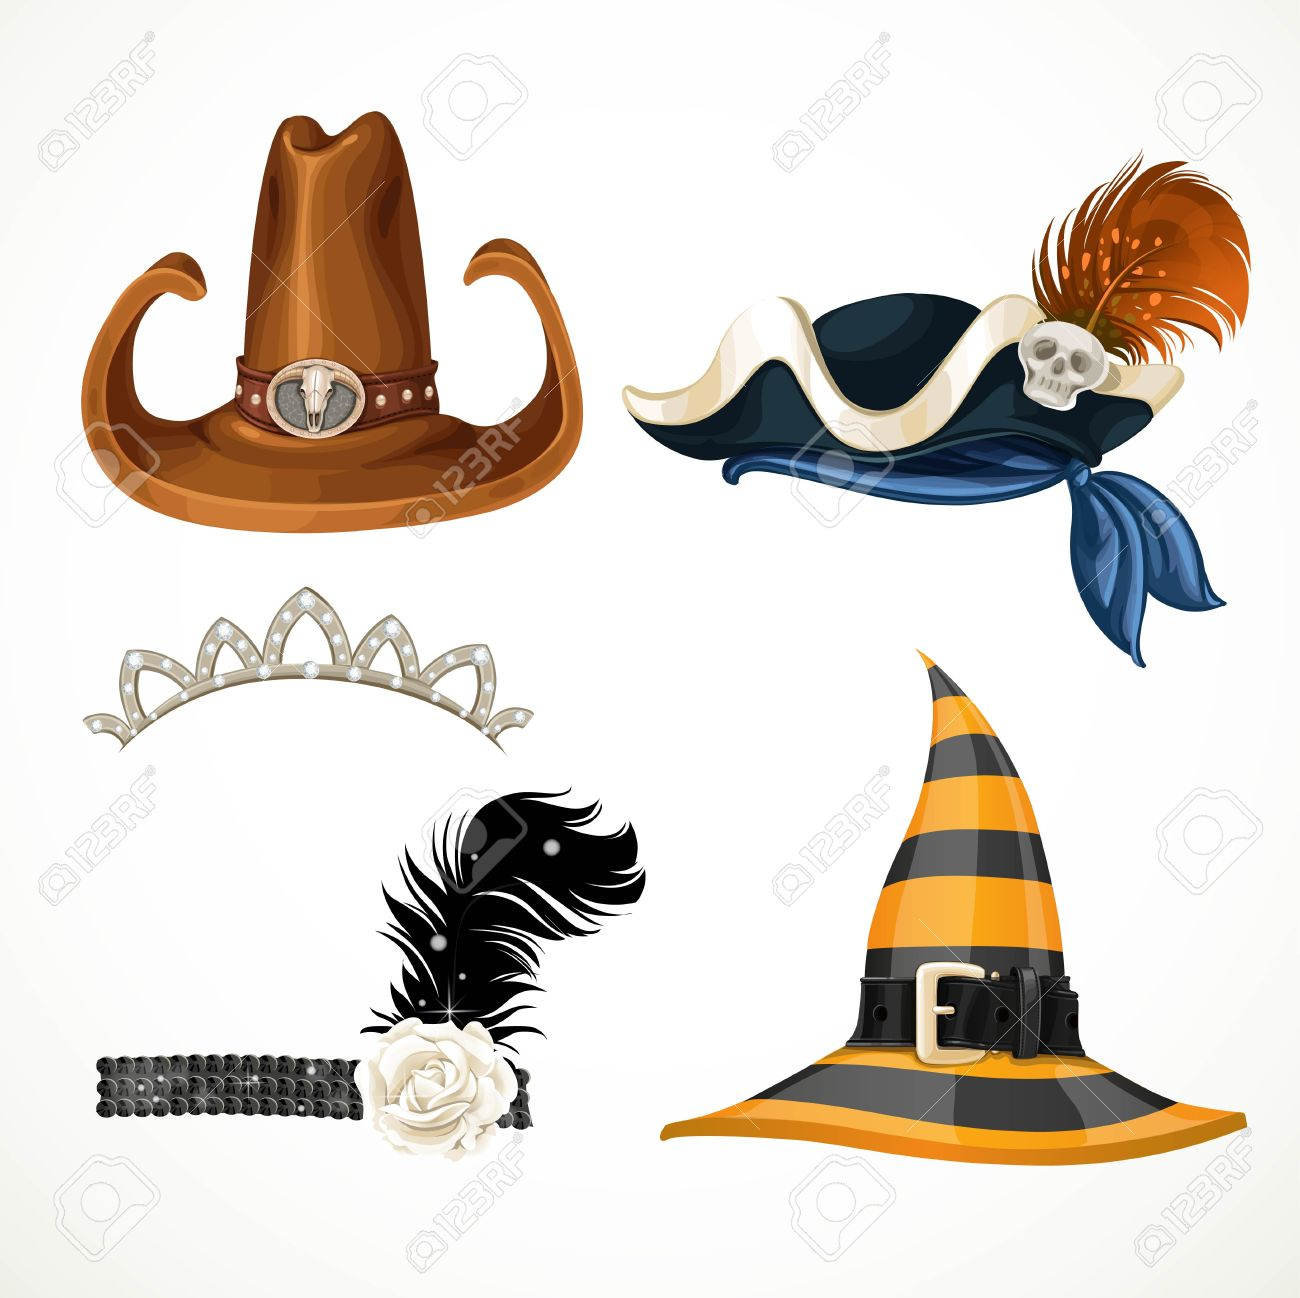 6e07d9aac13 Set Of Hats For The Carnival Costumes - Retro